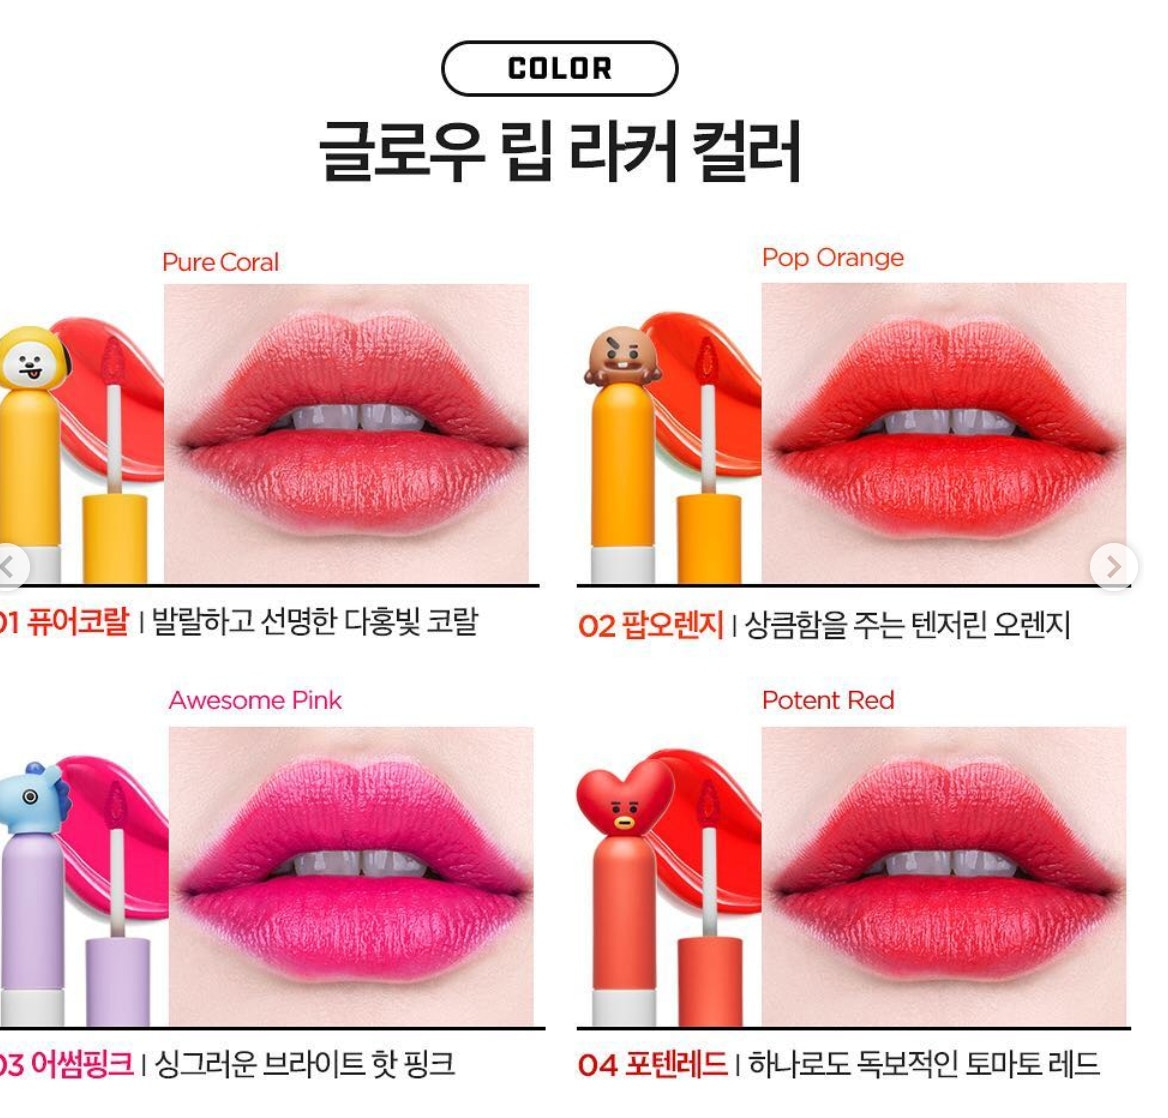 Where Can You Buy The BTS x VT Cosmetics Makeup Collection